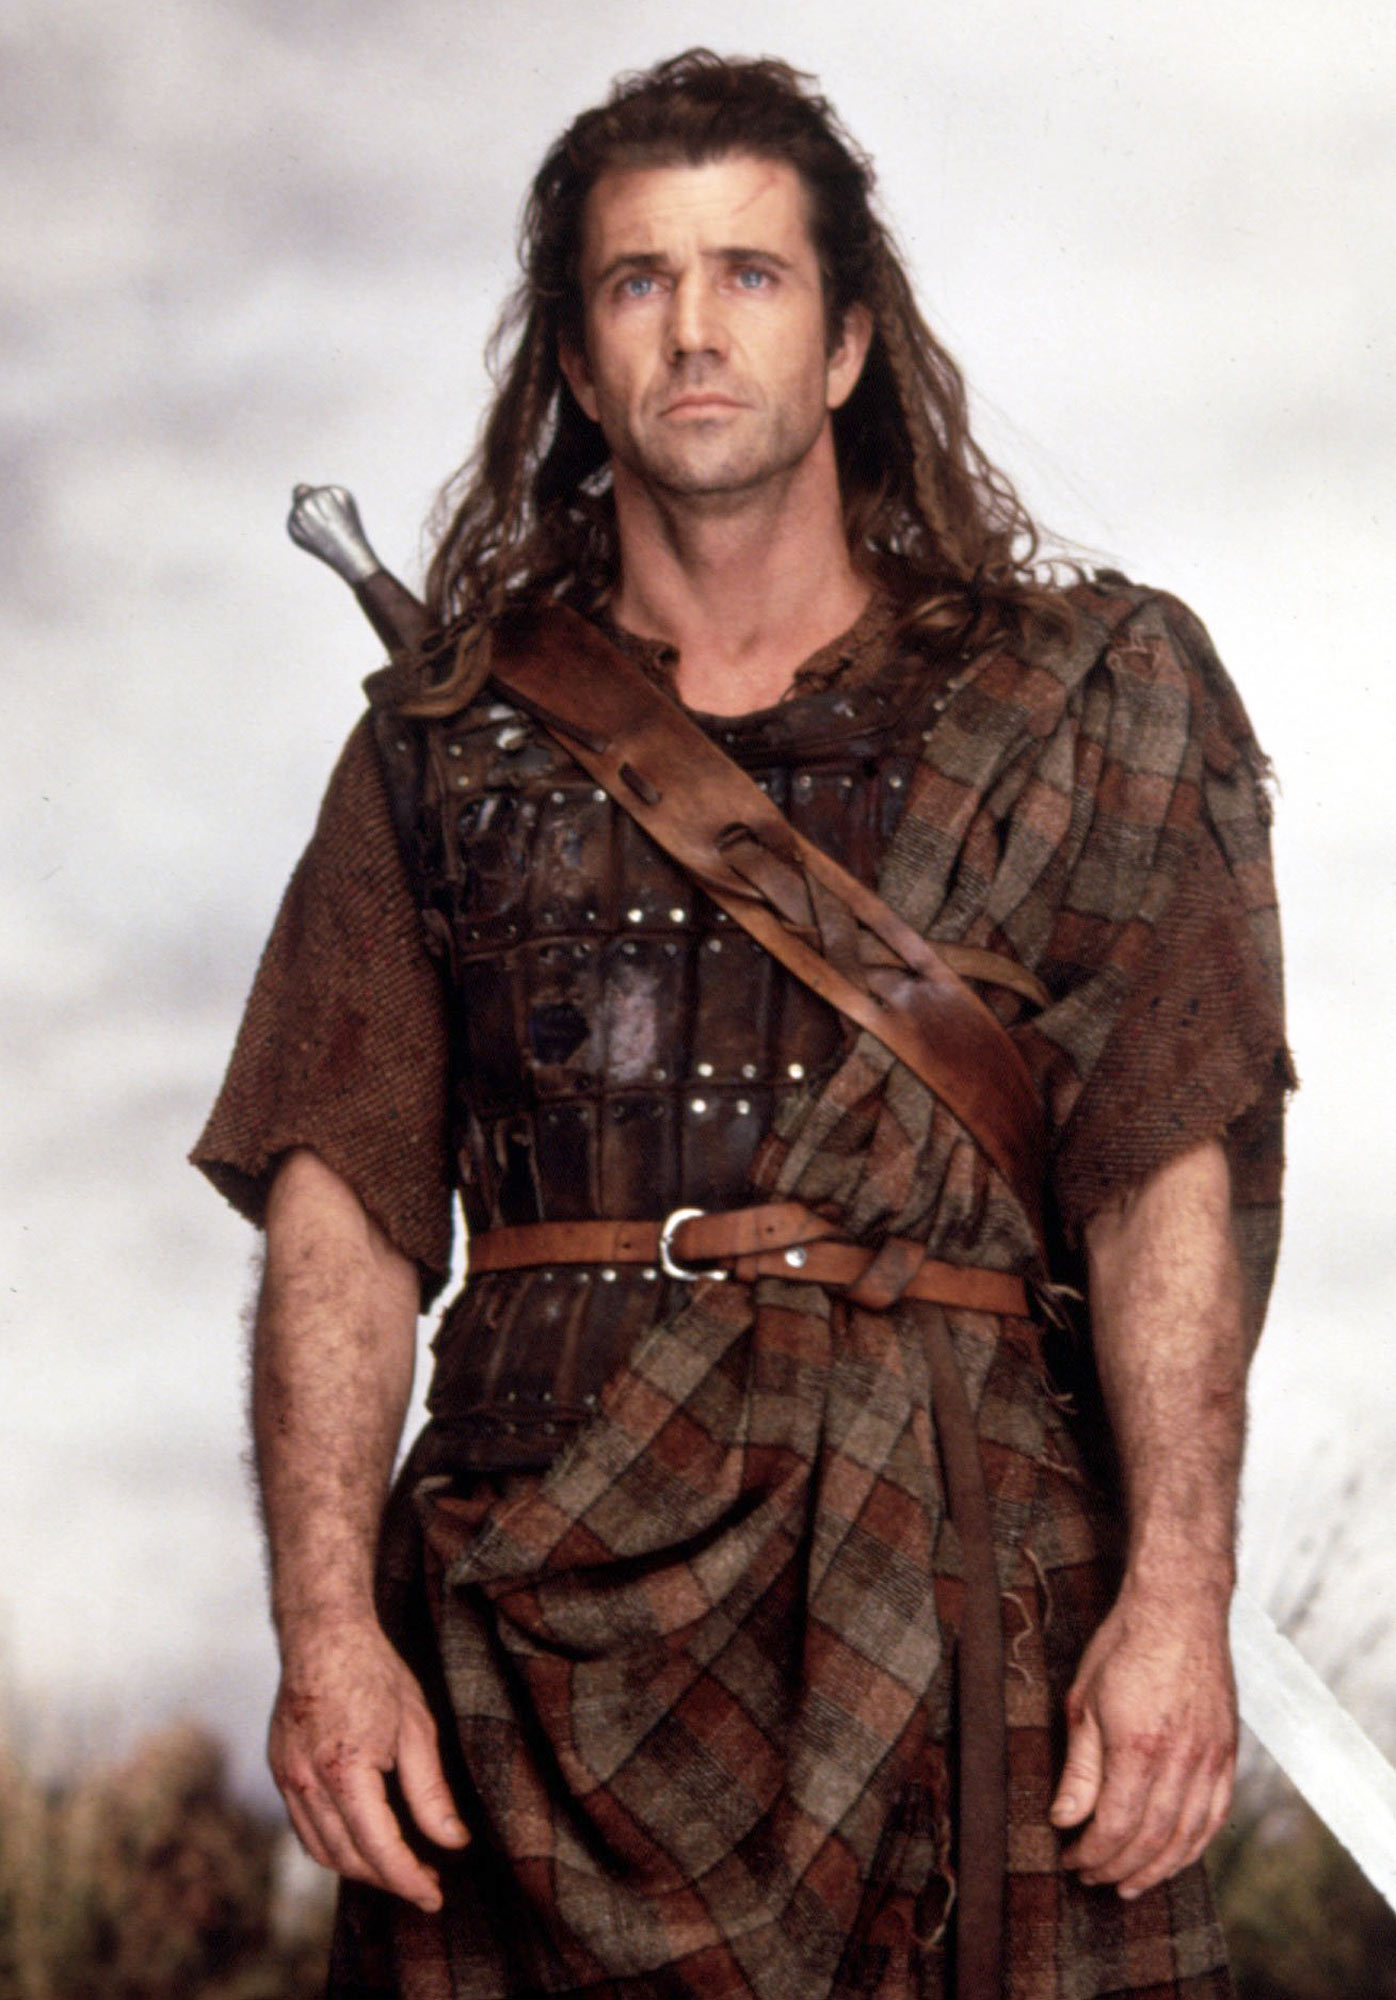 BRAVEHEART, Mel Gibson, 1995, TM and Copyright © 20th Century Fox Film Corp. All rights reserved. Co